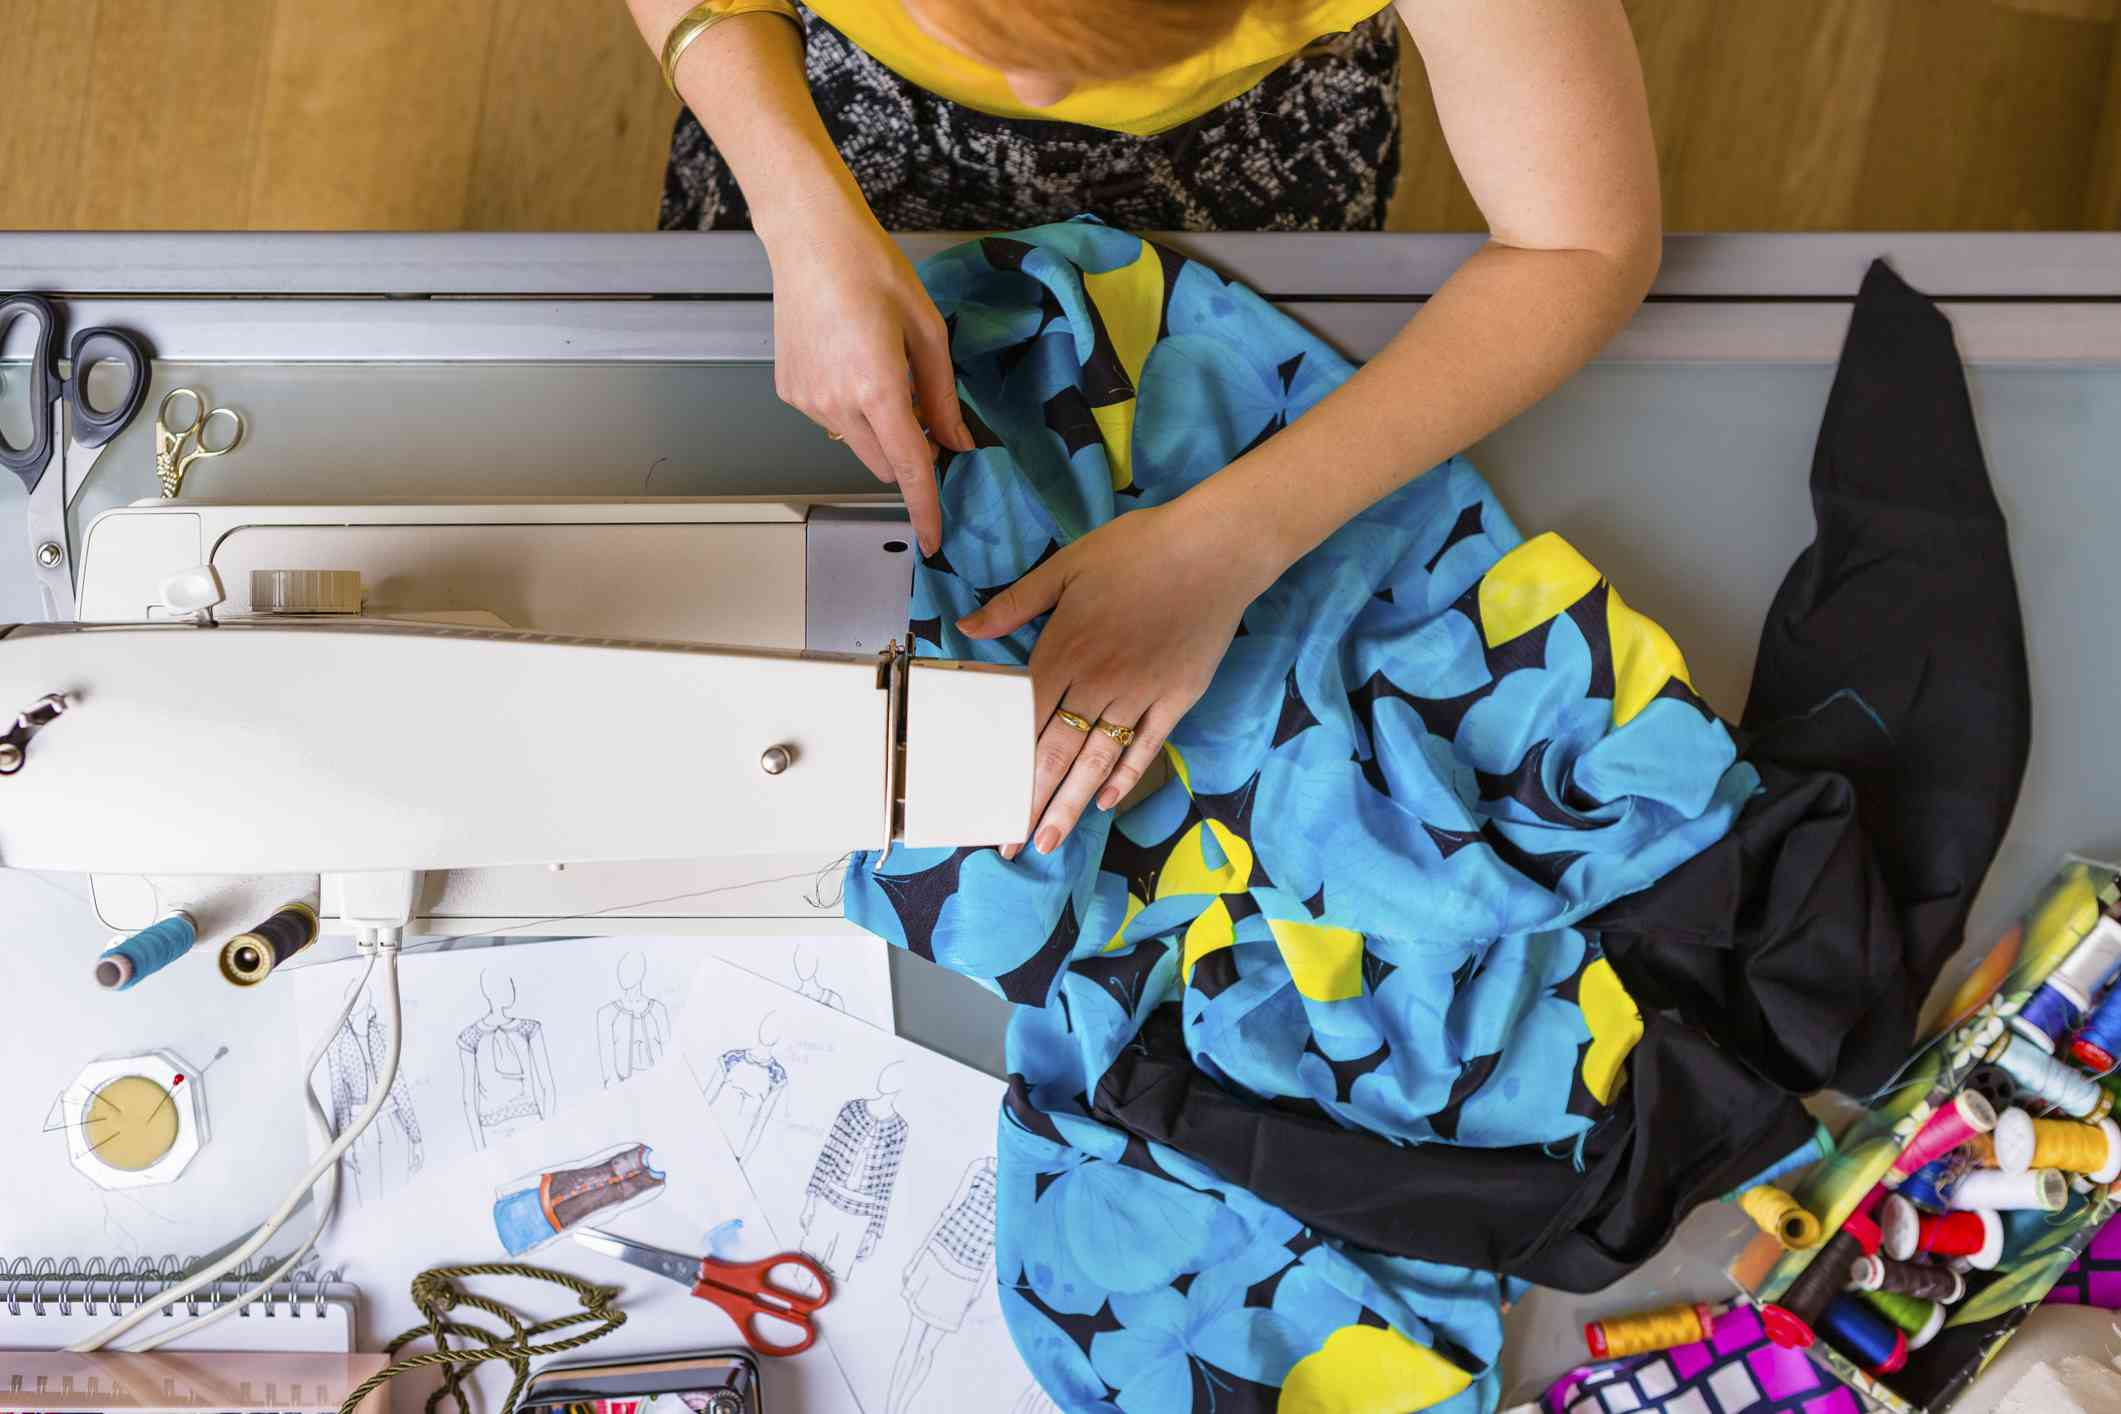 Woman works with sewing machine and patterned fabric